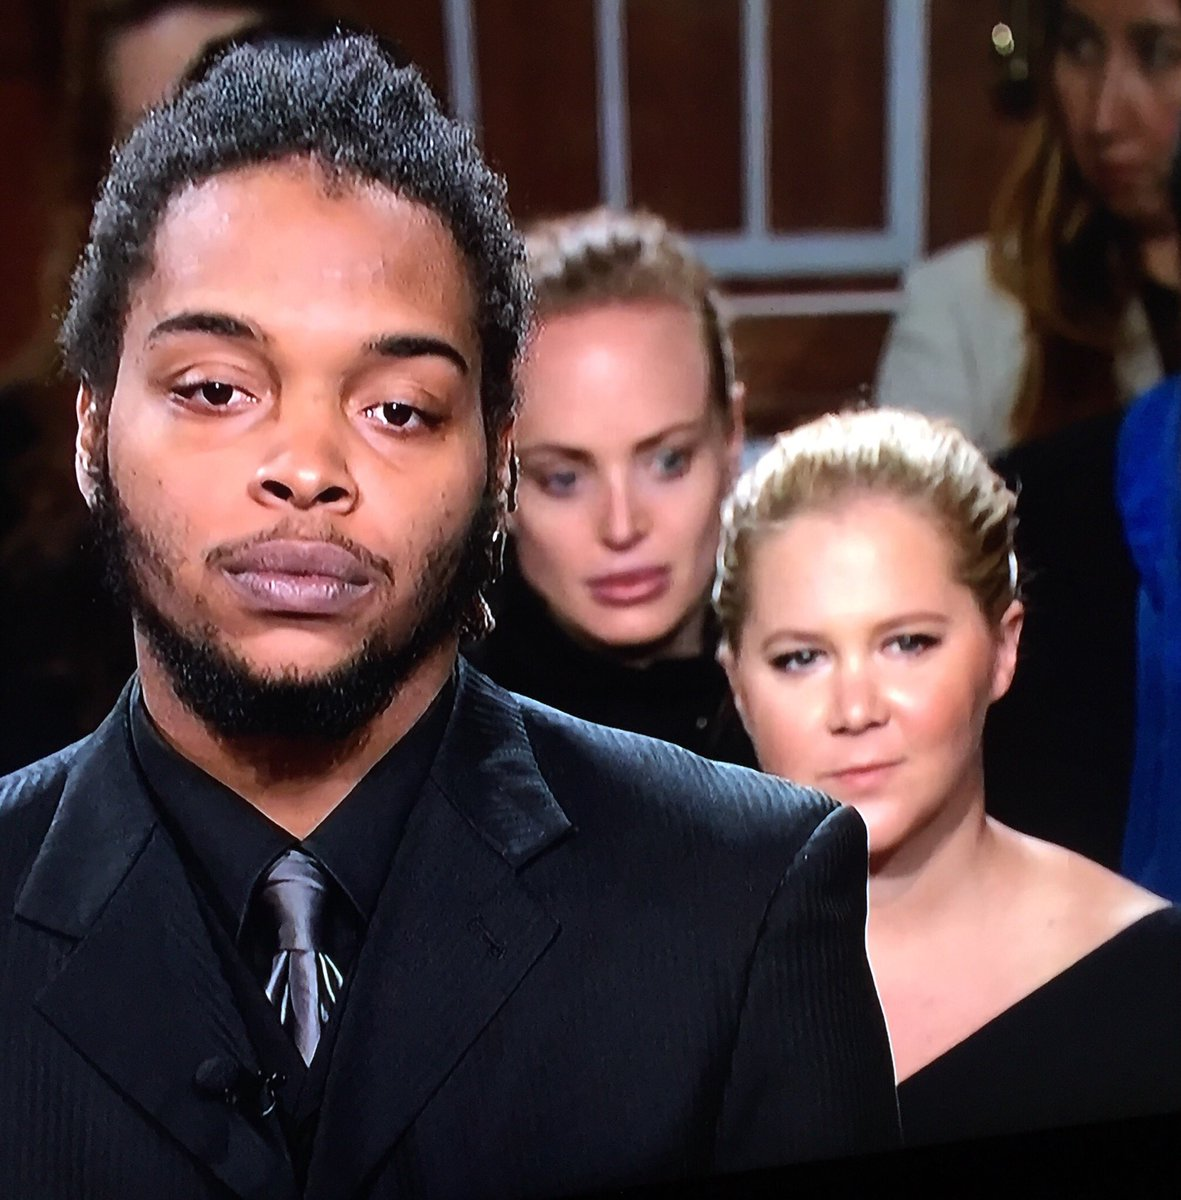 It appears I'm not the only Judge Judy freak out there - isn't that Amy Schumer in the gallery?